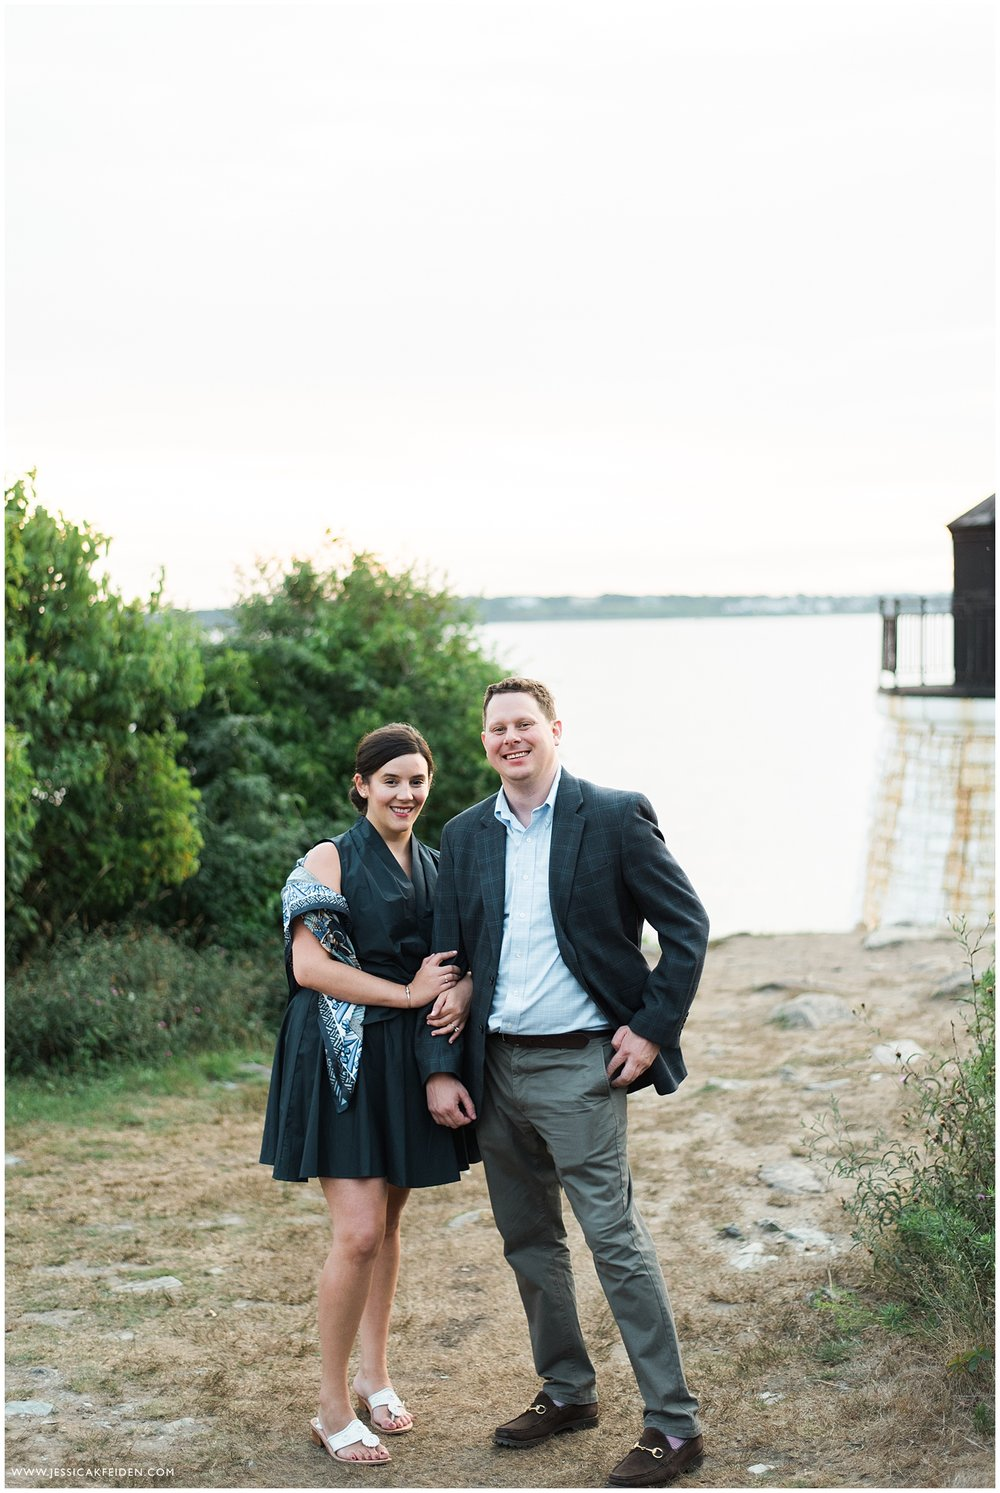 Jessica K Feiden Photography_Castle Hill Lighthouse Newport Engagement Session Photographer_0008.jpg